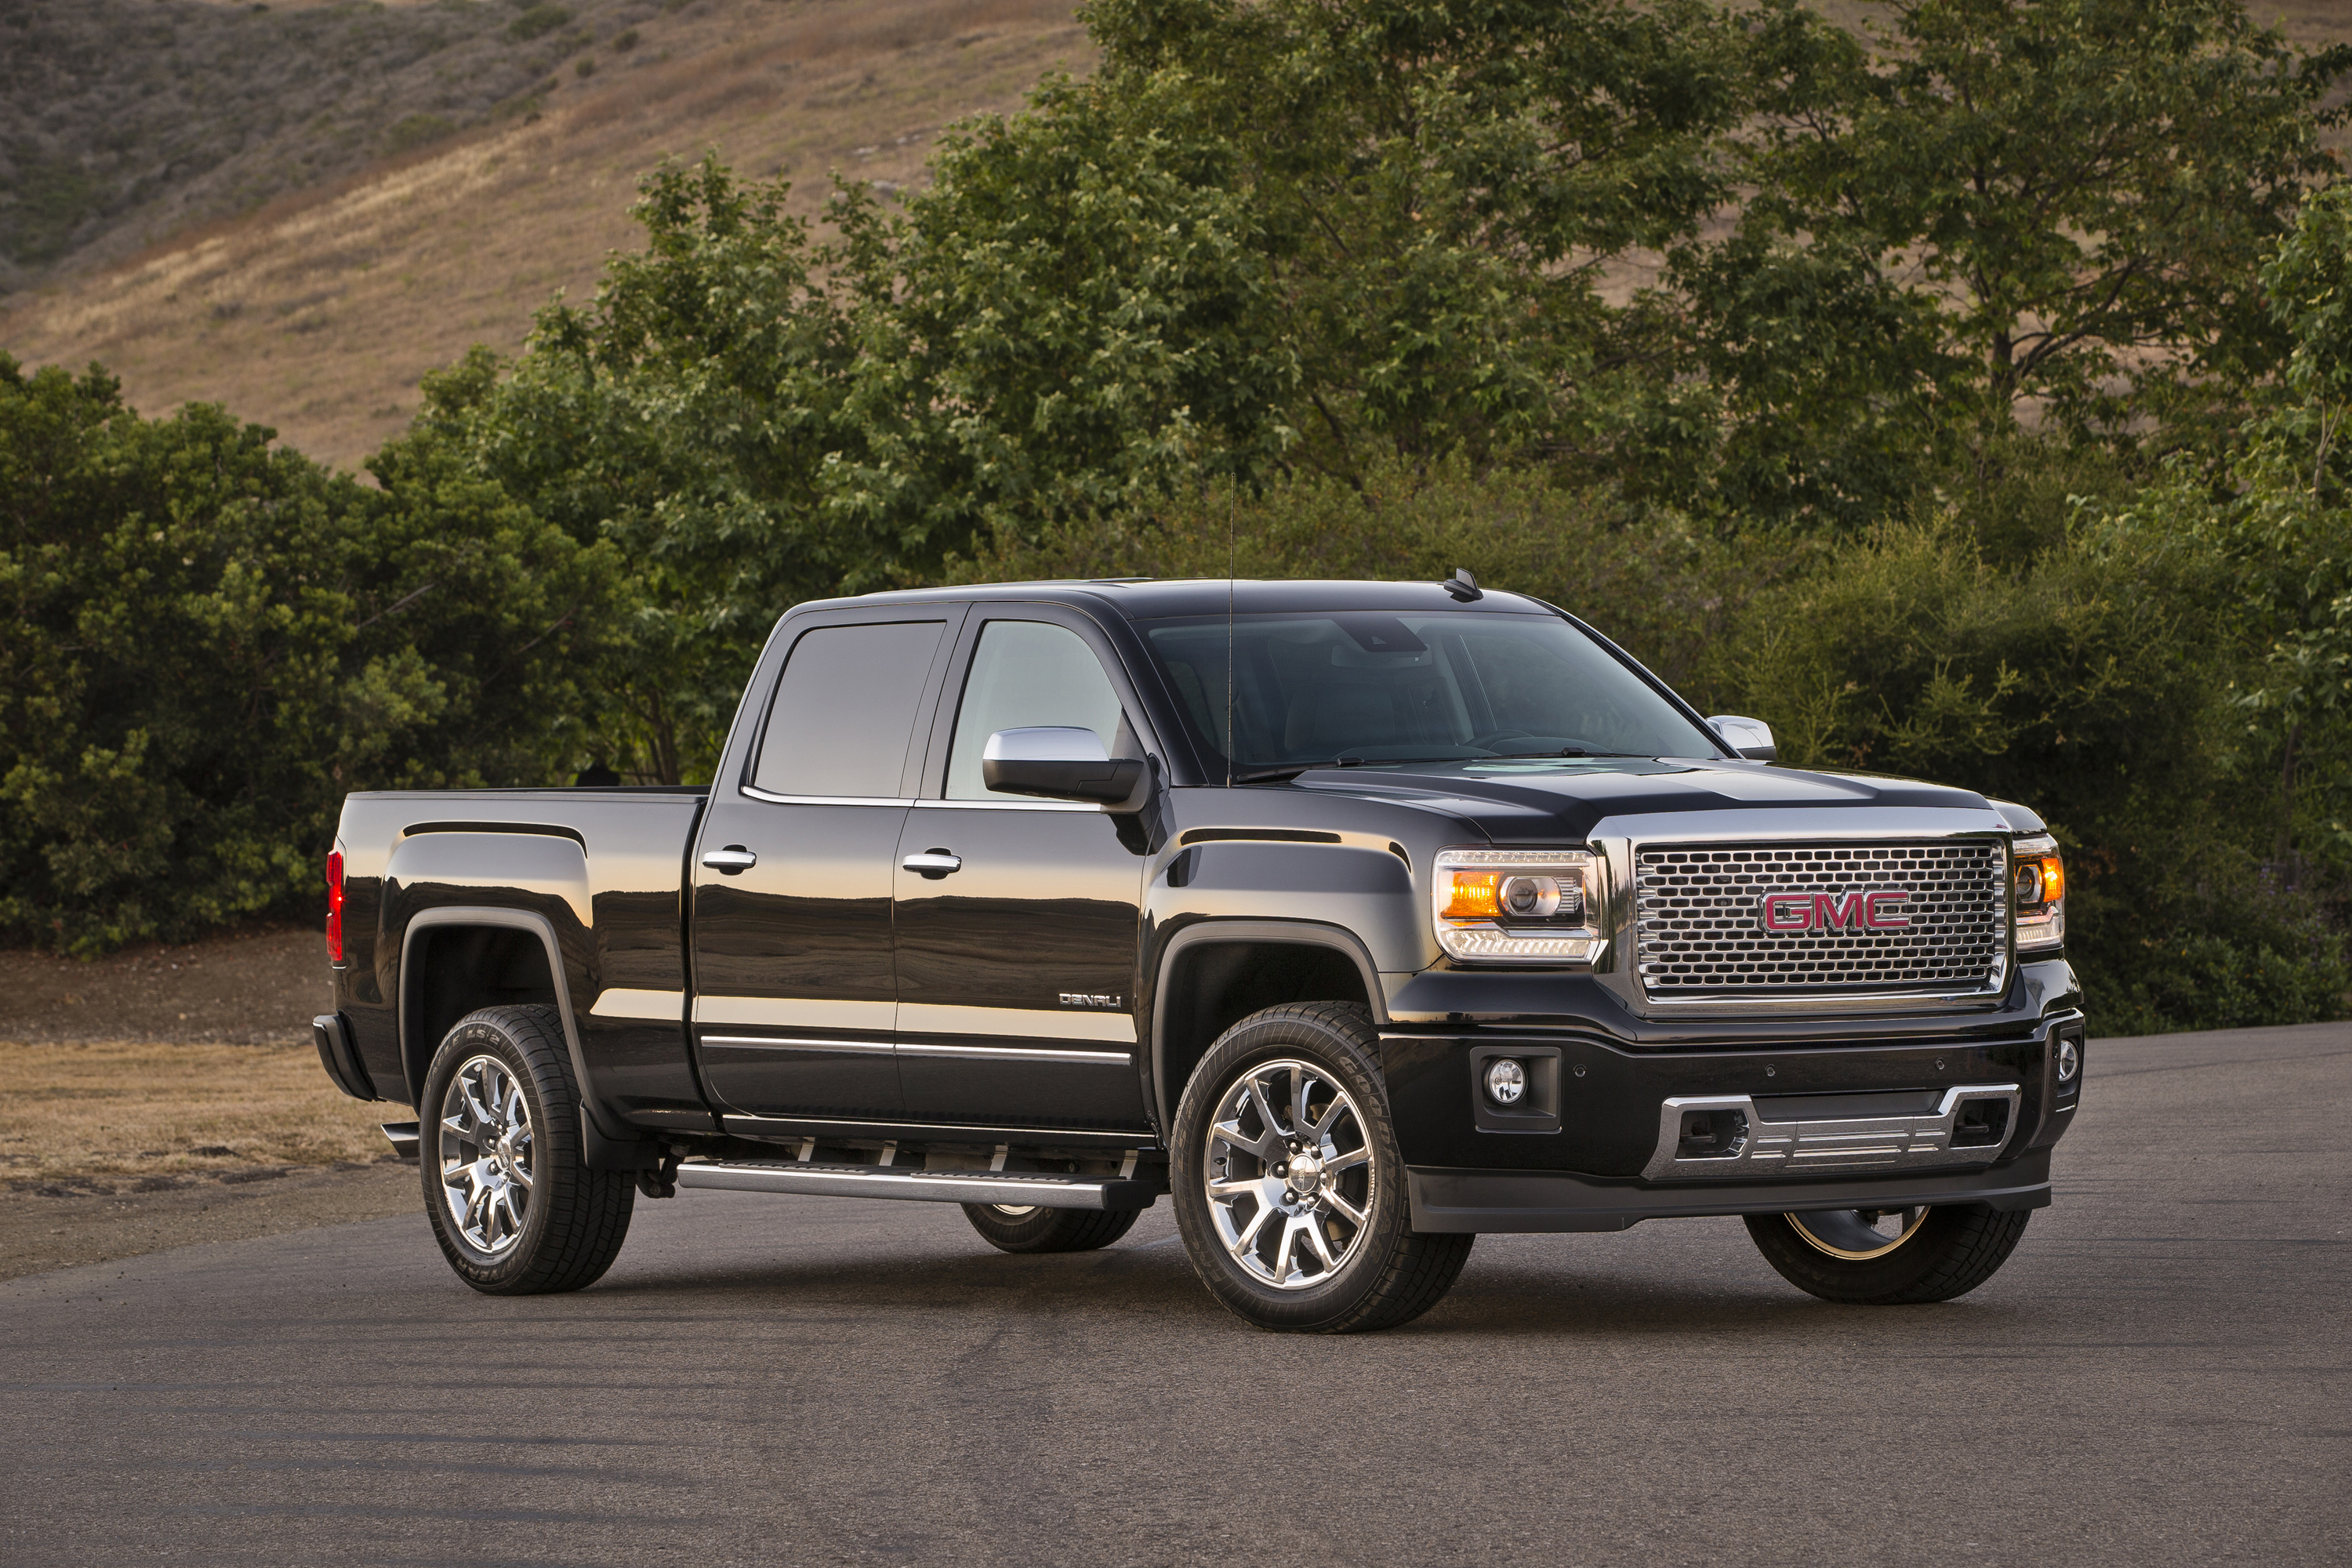 elevation sierra denali elevationedition content edition pages starts media at jan news en gmc us detail